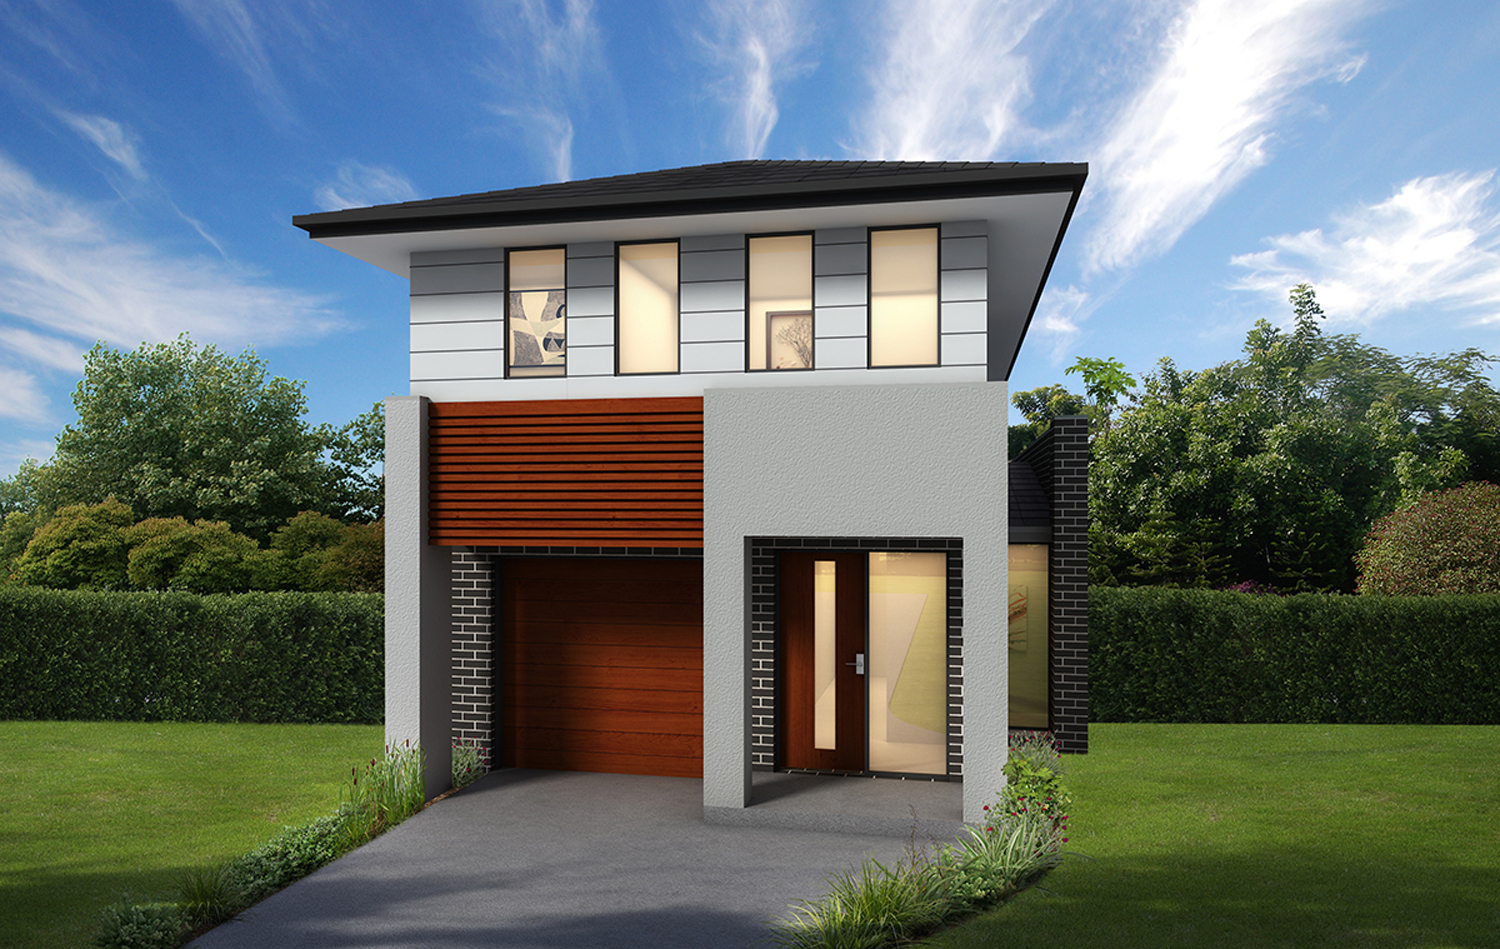 Meeting high demand narrow lot designs completehome for House plans with lots of storage